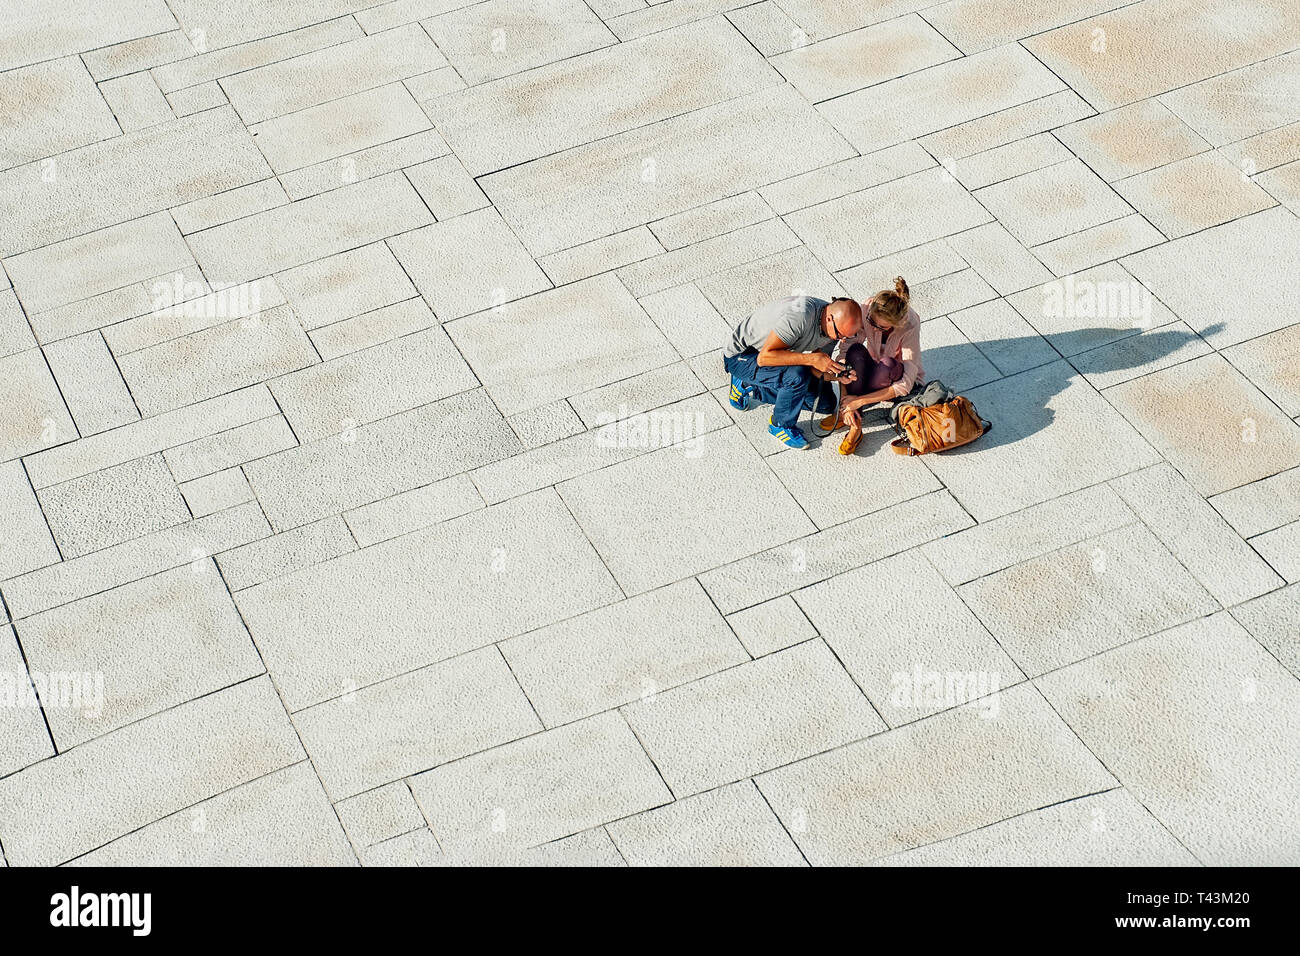 Norway, Oslo August 1, 2013: Two young people tourists relax and view photos on the waterfront of the Opera house in Oslo at sunset. Editorial Stock Photo